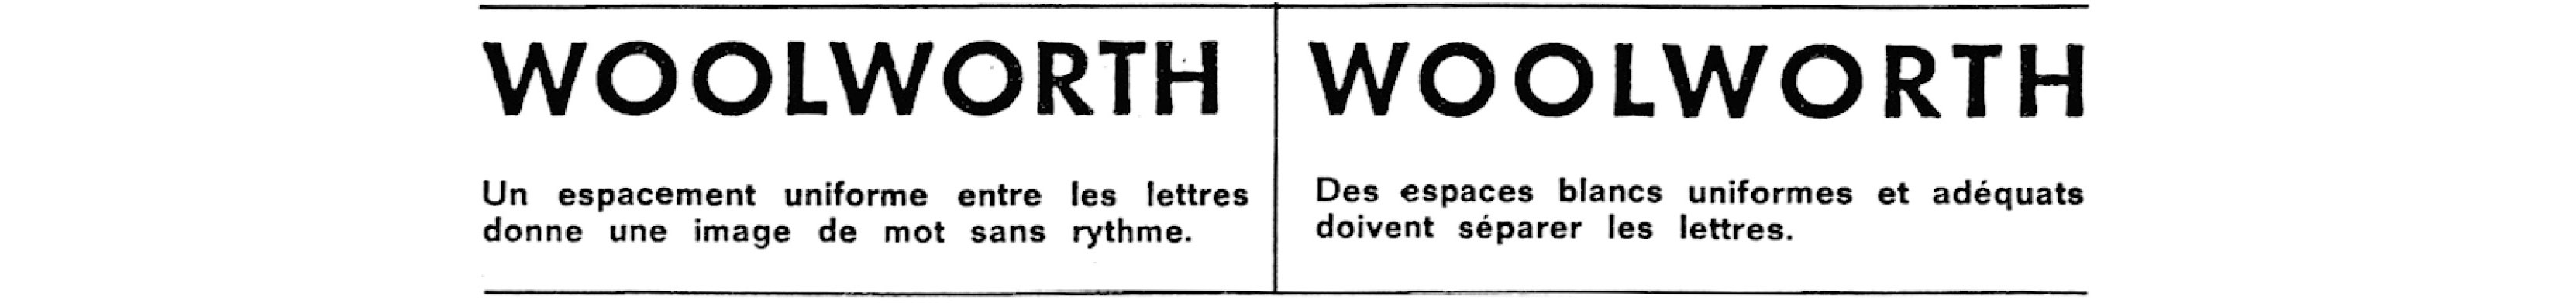 Jan-Tschichold-te-parle-de-typographie-article-Persee-communication-et-langages-1985-schema-02